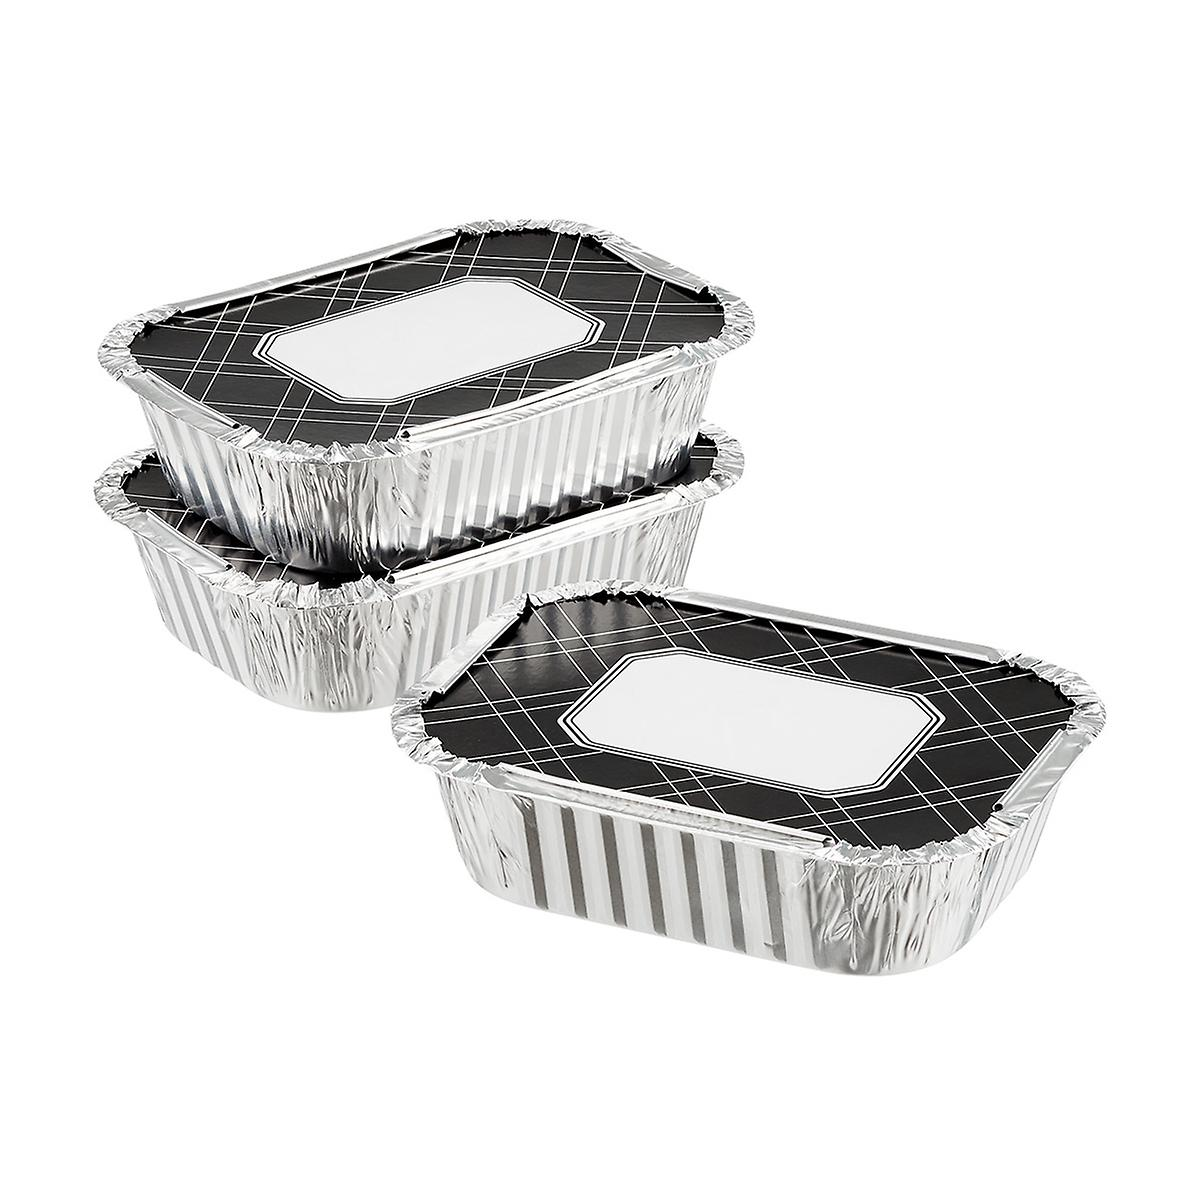 2 lb. Foil Baking Pan with Black Lid